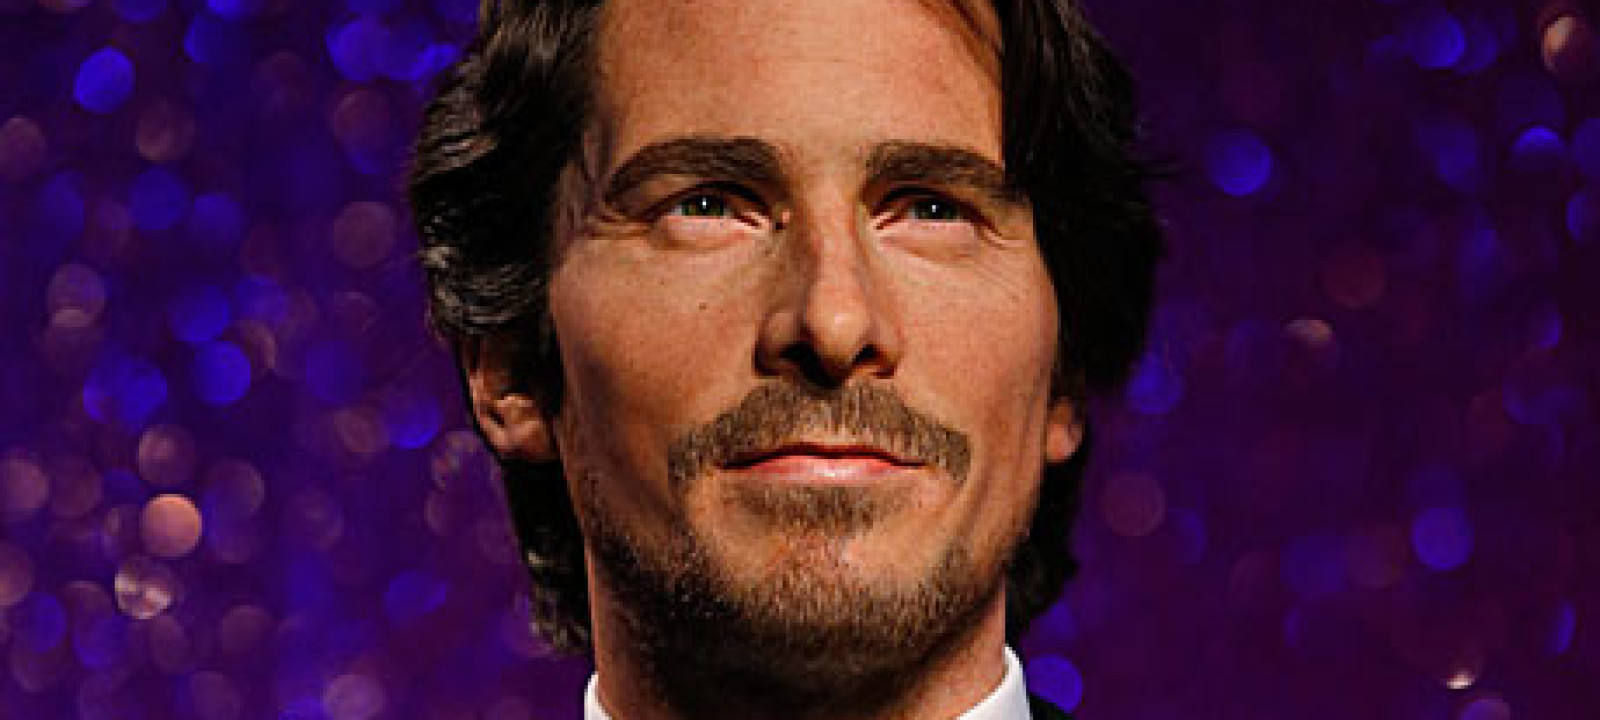 Christian Bale's waxwork at Madame Tussauds